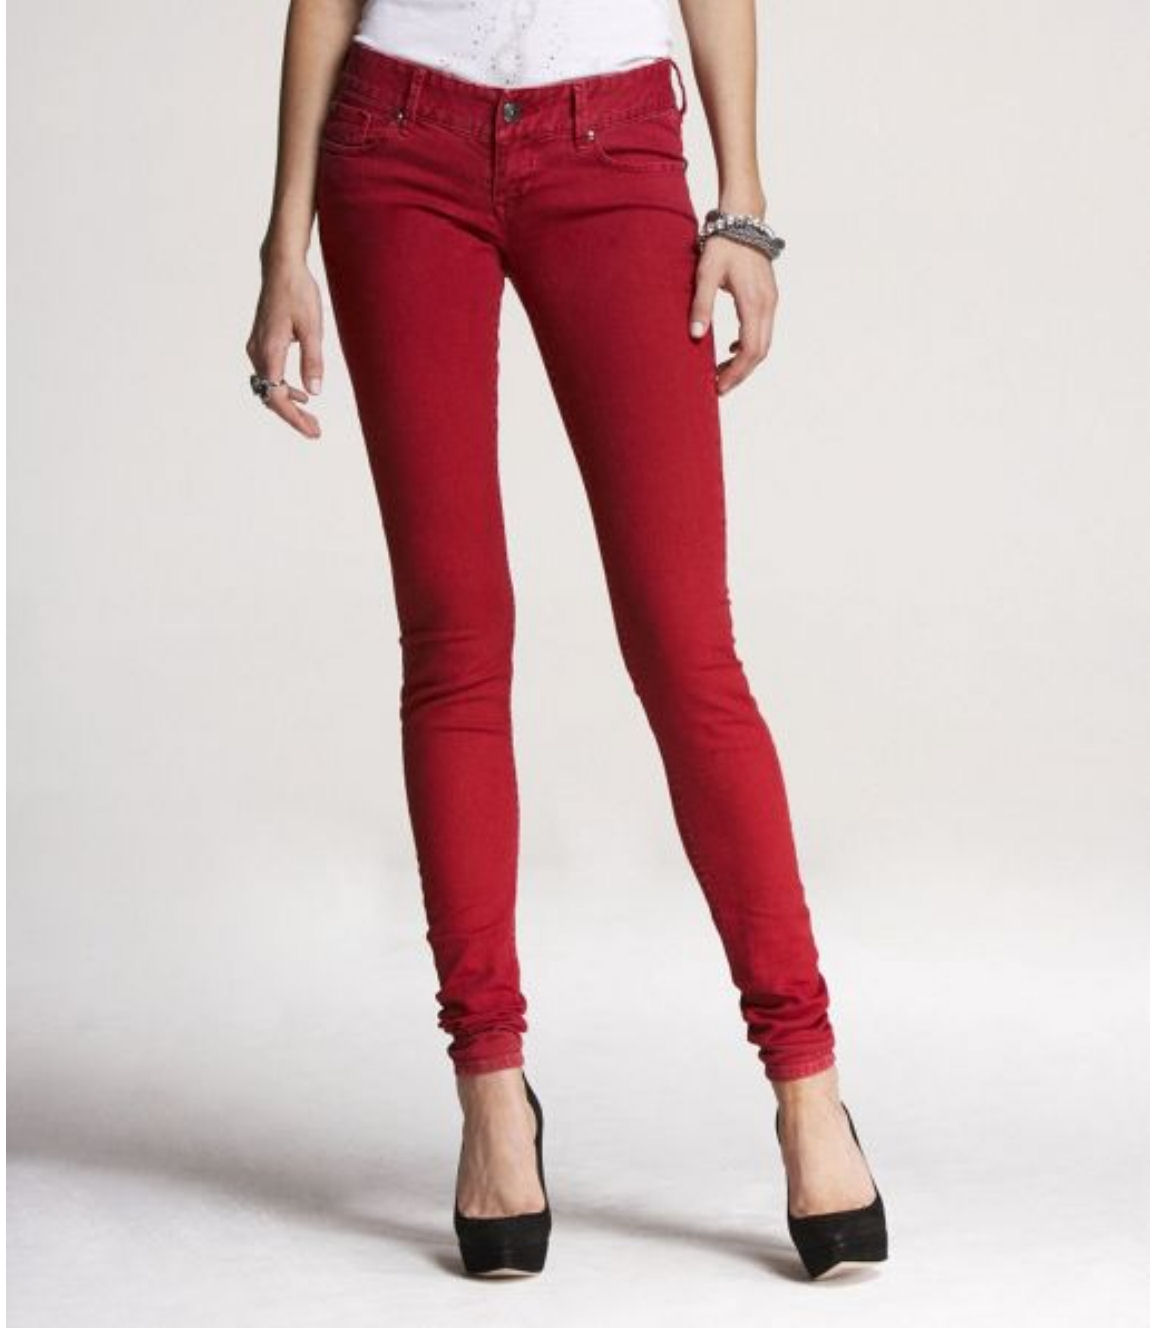 red jeans for women red women jeans qnfwcas